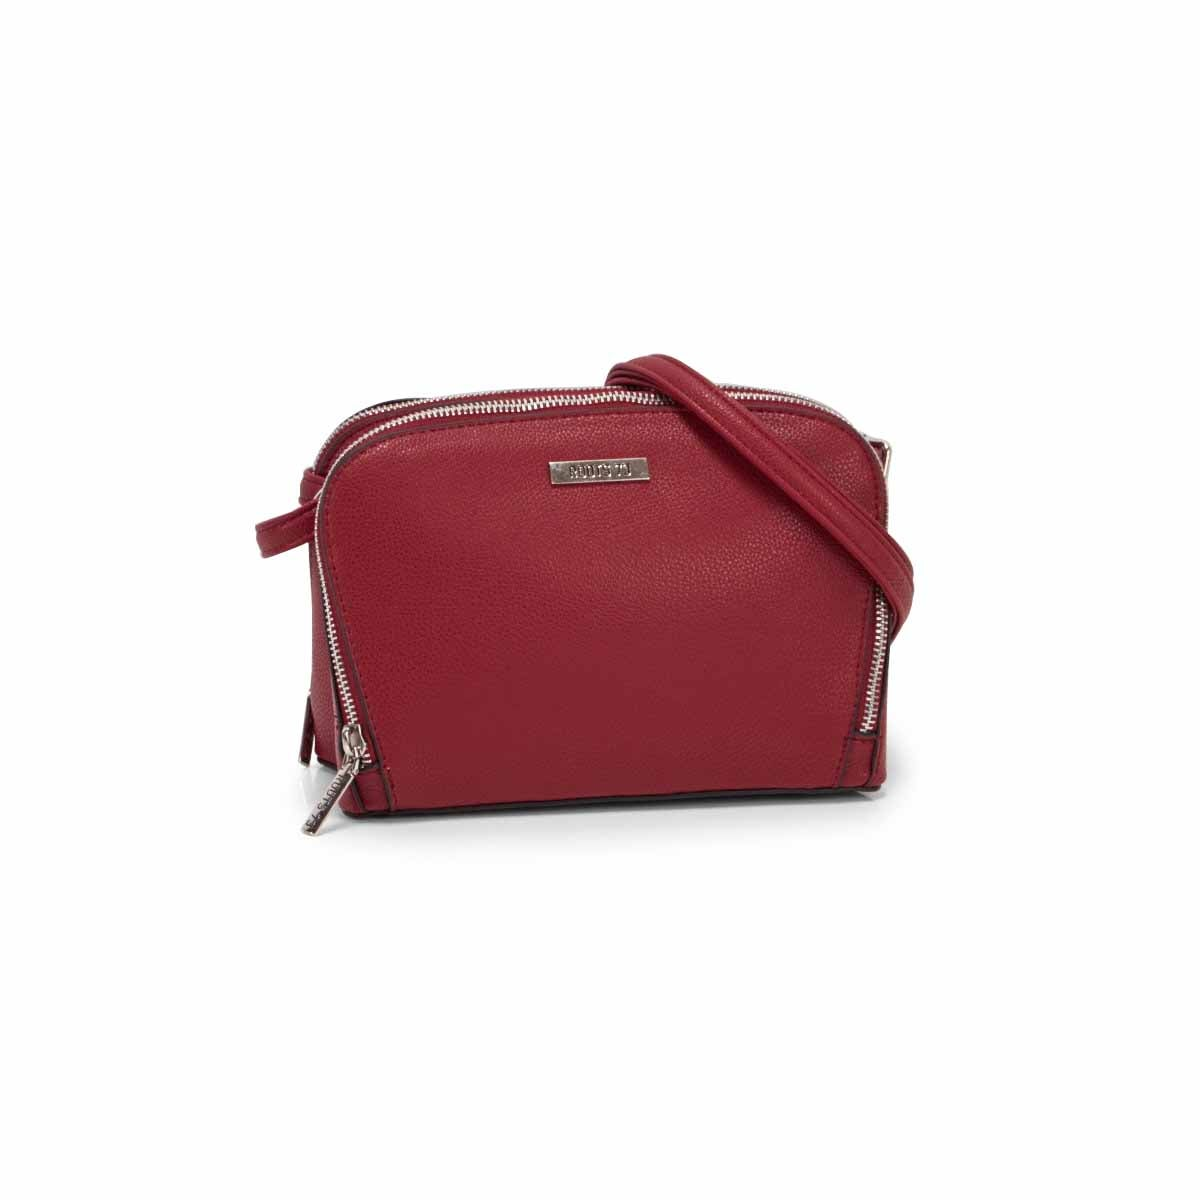 Lds Roots73 burgundy 2 compartment bag